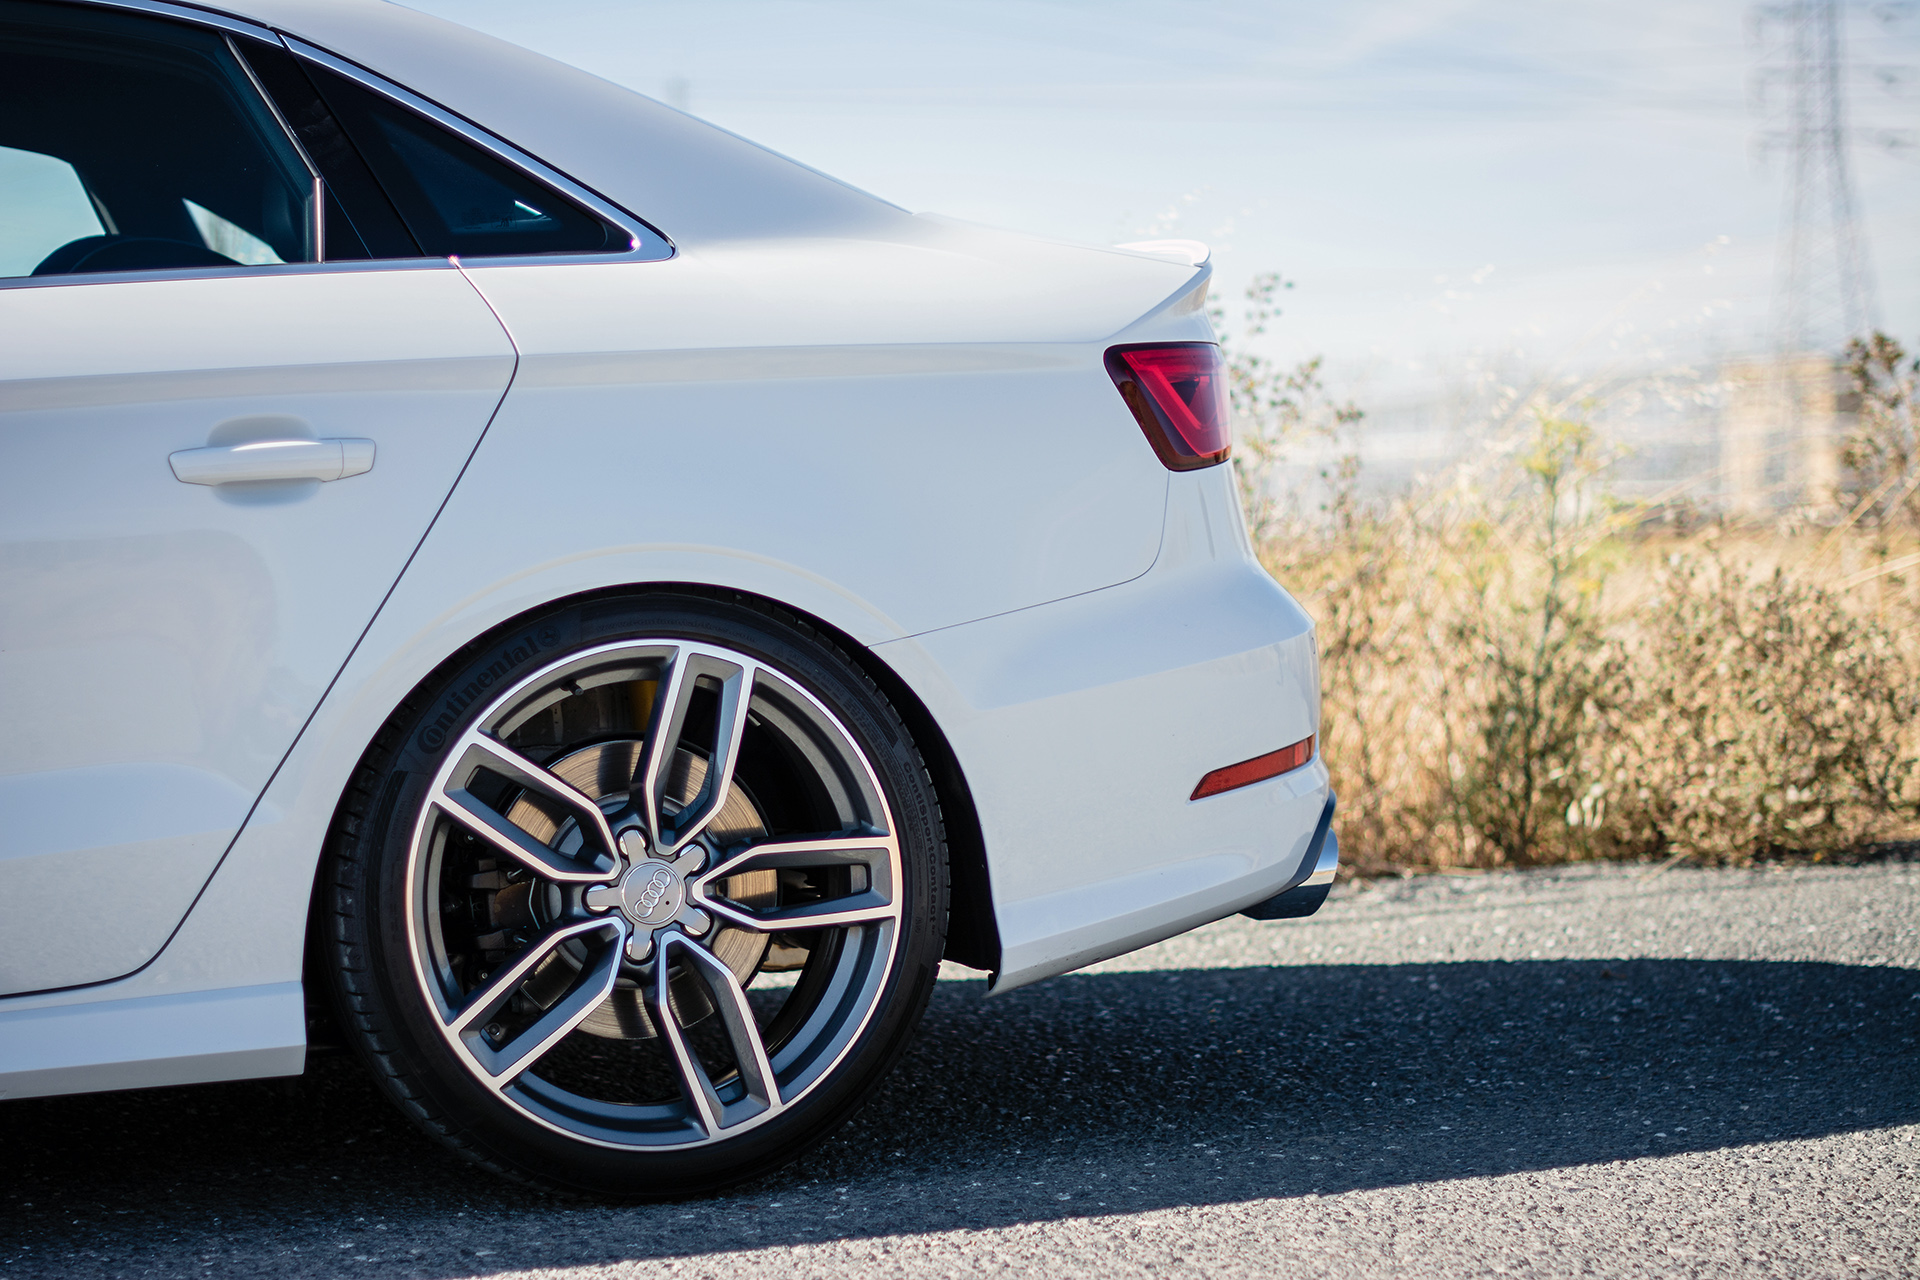 Glacier White Metallic Audi S3 Suspension Upgrades